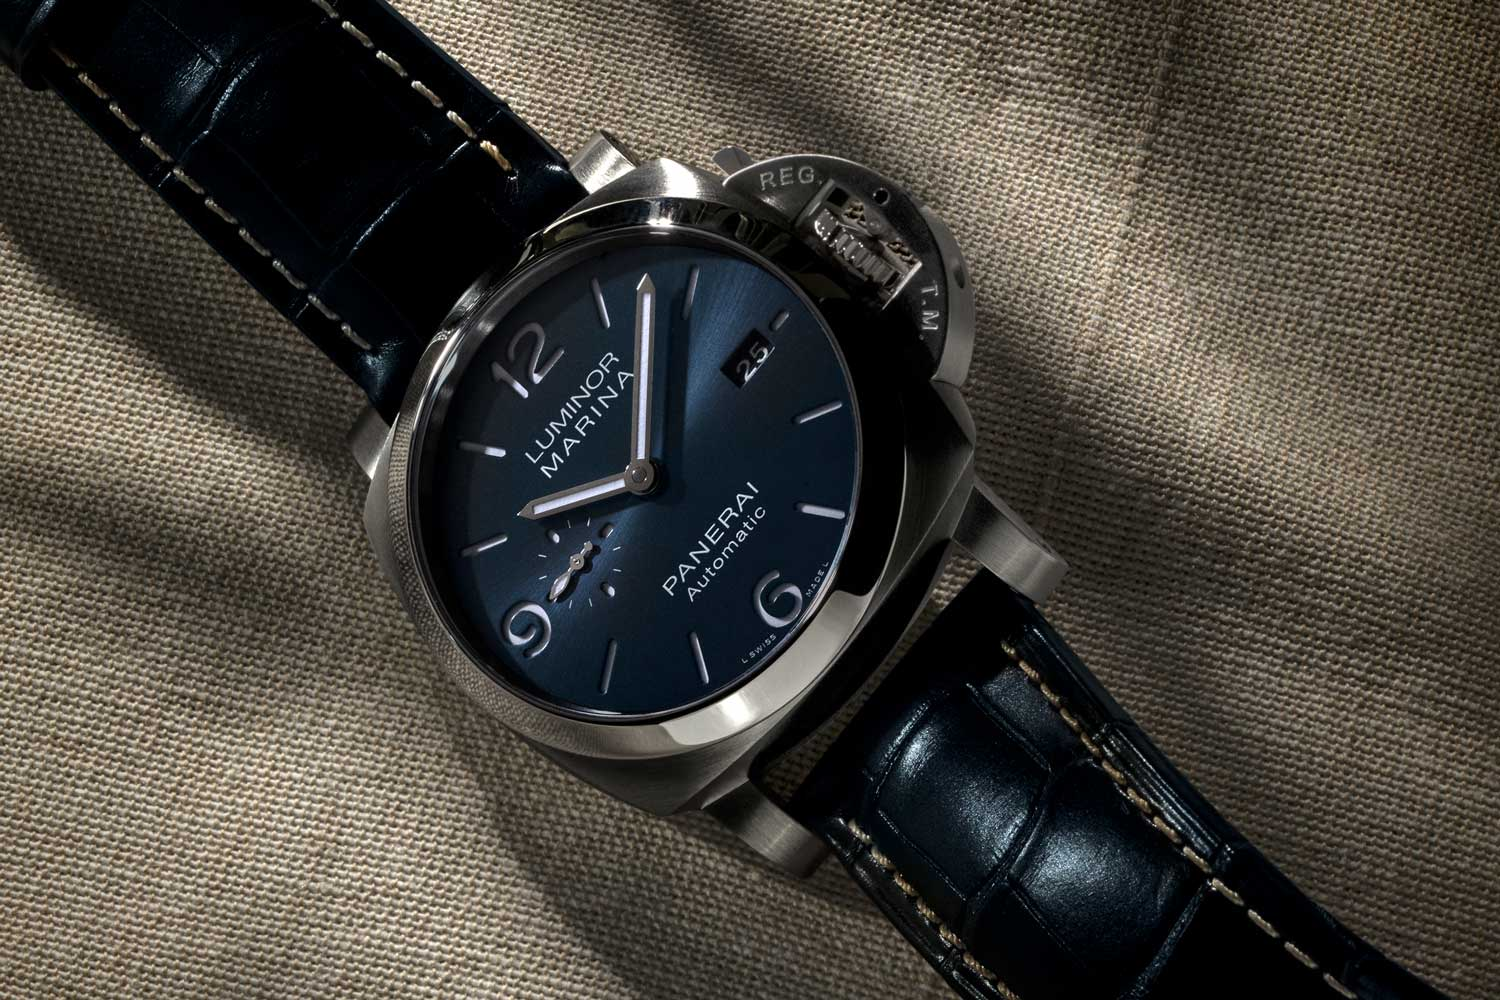 The Luminor Marina 44mm PAM01313 features the P.9010 calibre, entirely developed and created in the Panerai Manufacture in Neuchâtel. (©Revolution)